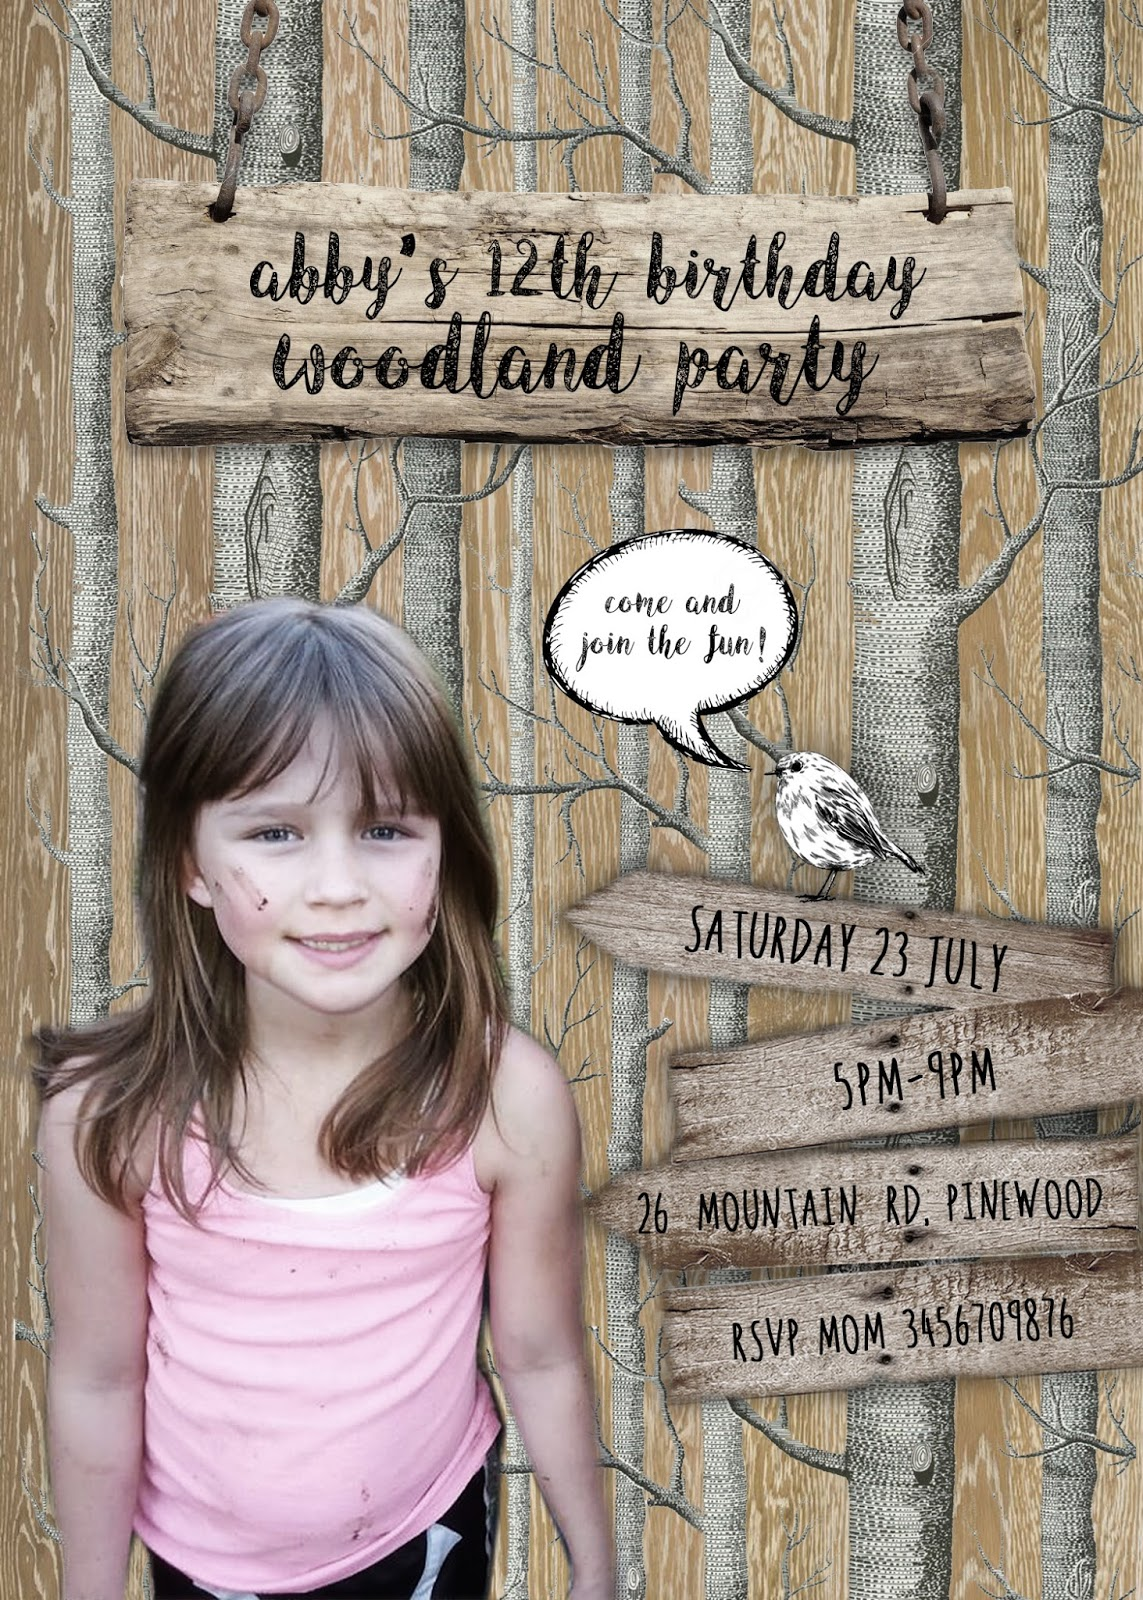 FREE Kids Party Invitations – Free Personalised Birthday Invitations